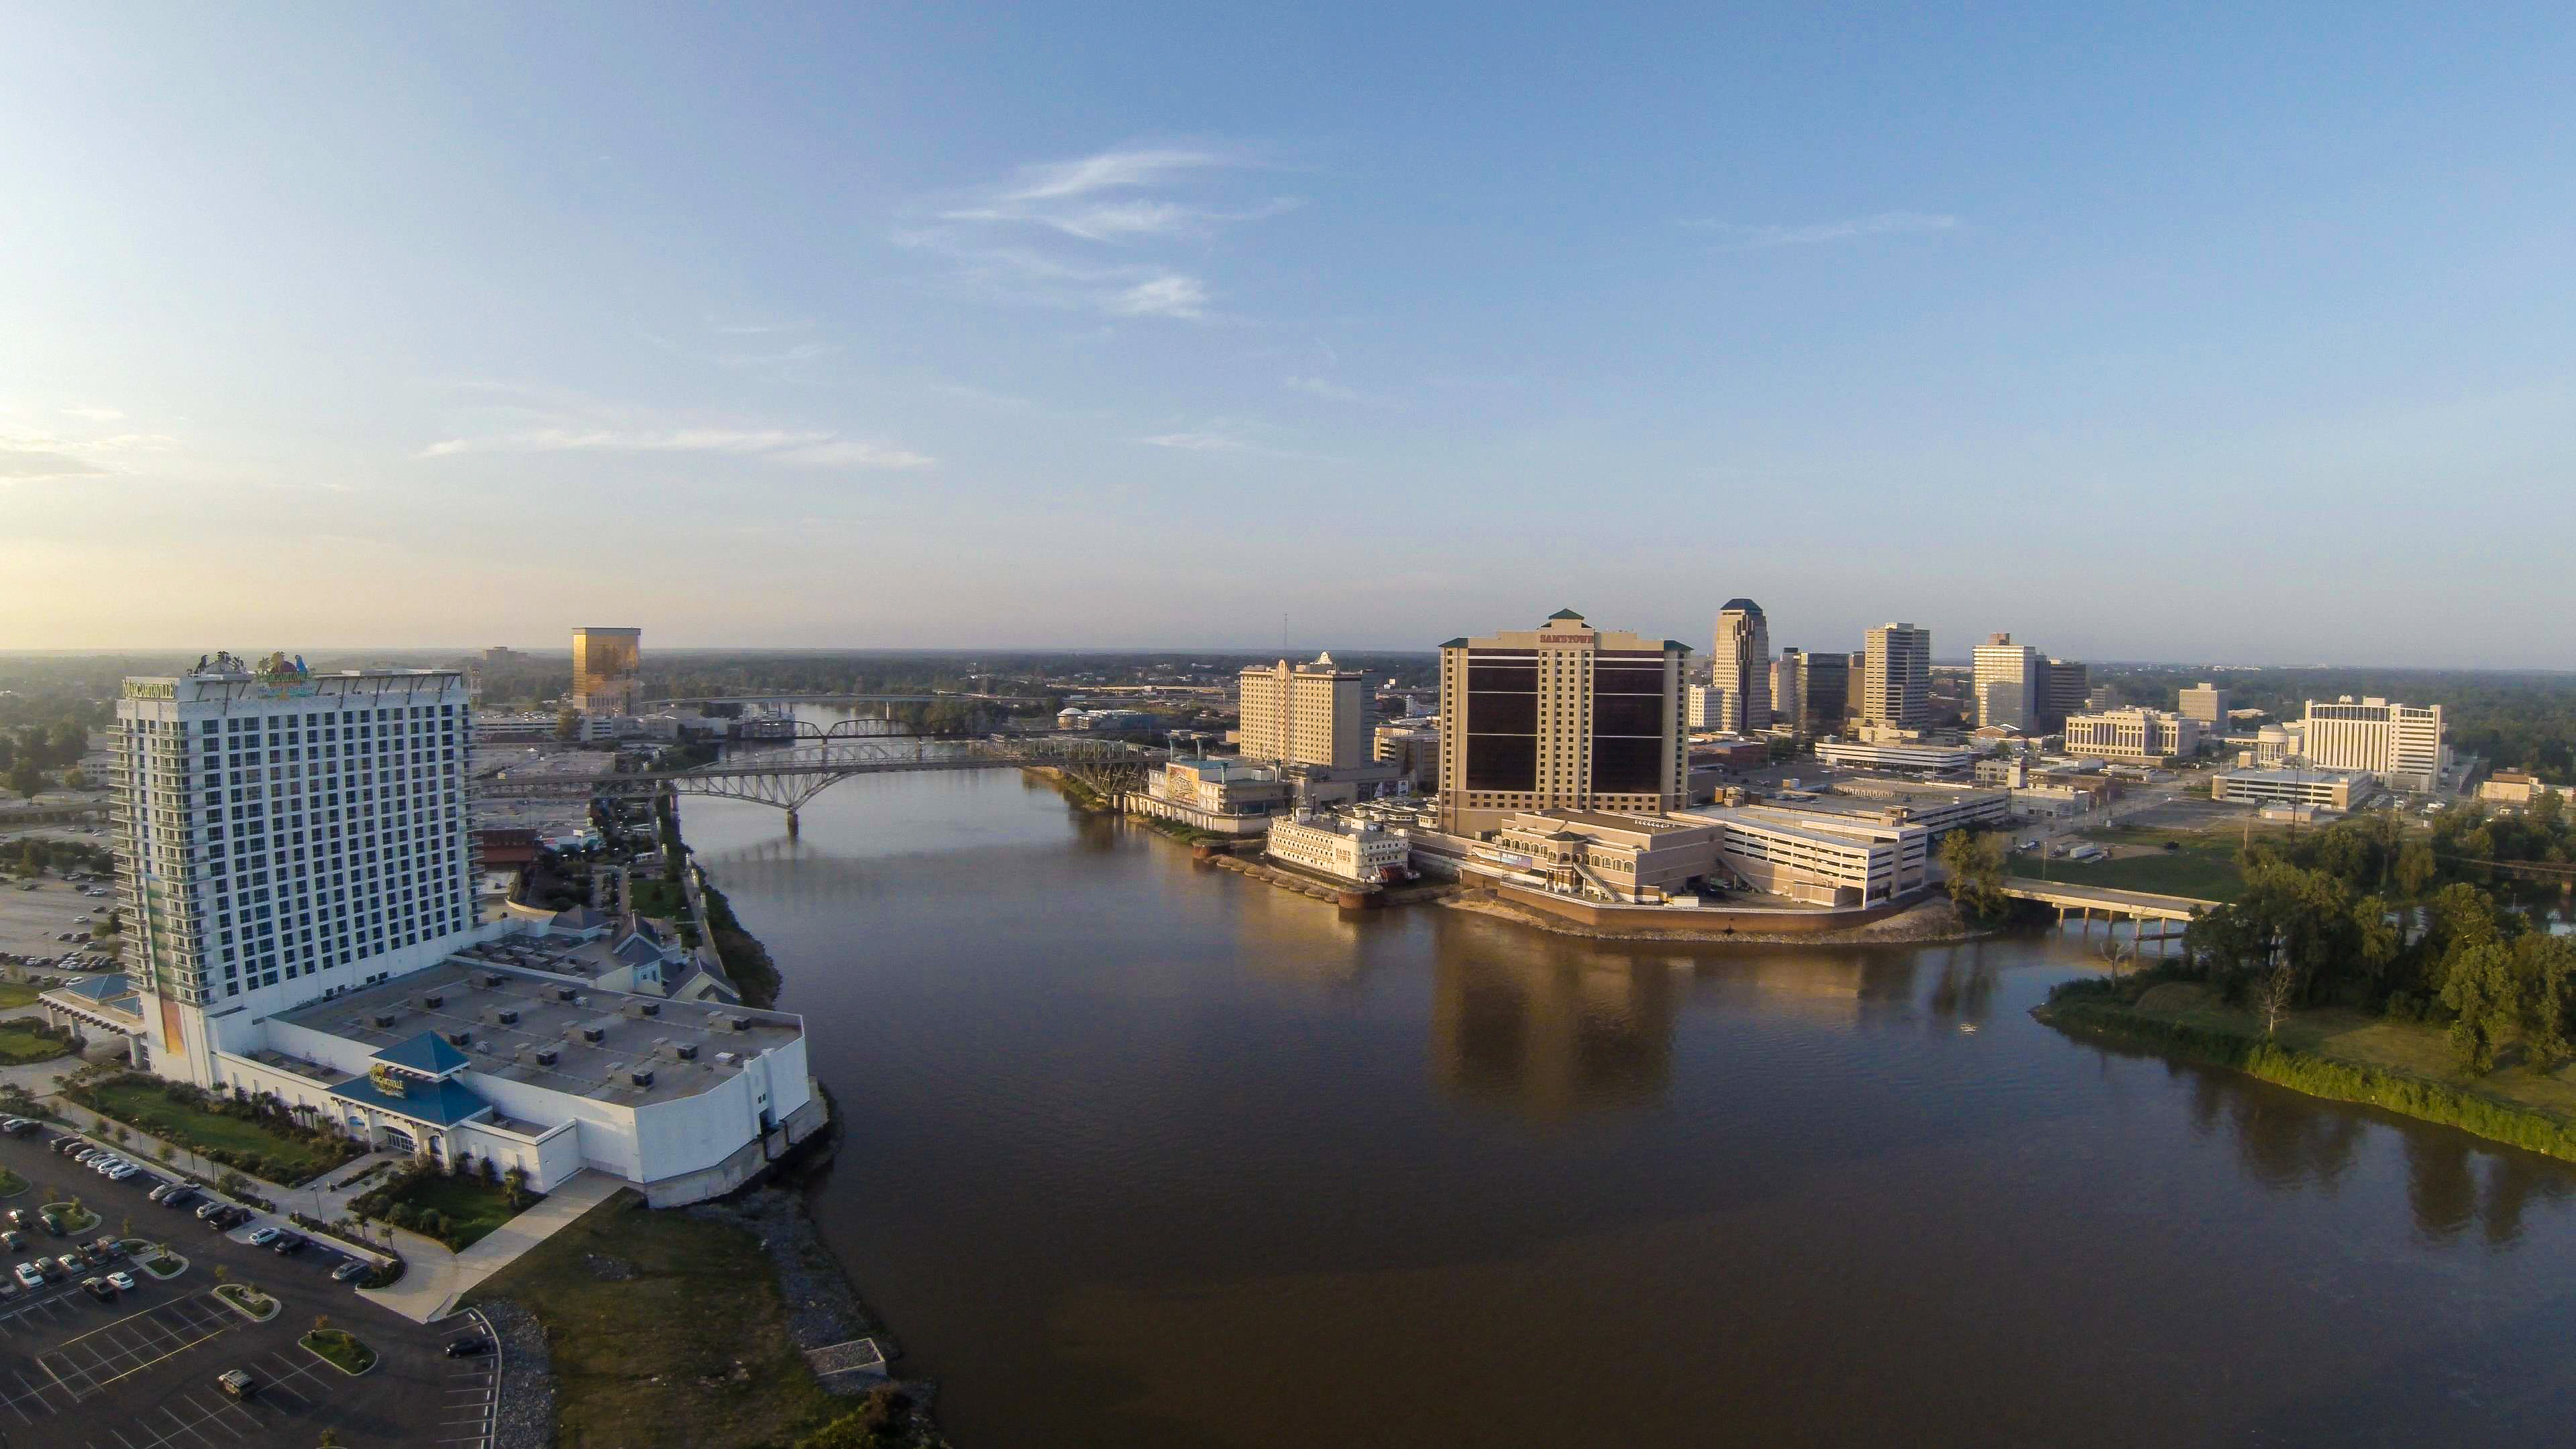 Wonderful picture of the Red River dividing Shreveport-Bossier.